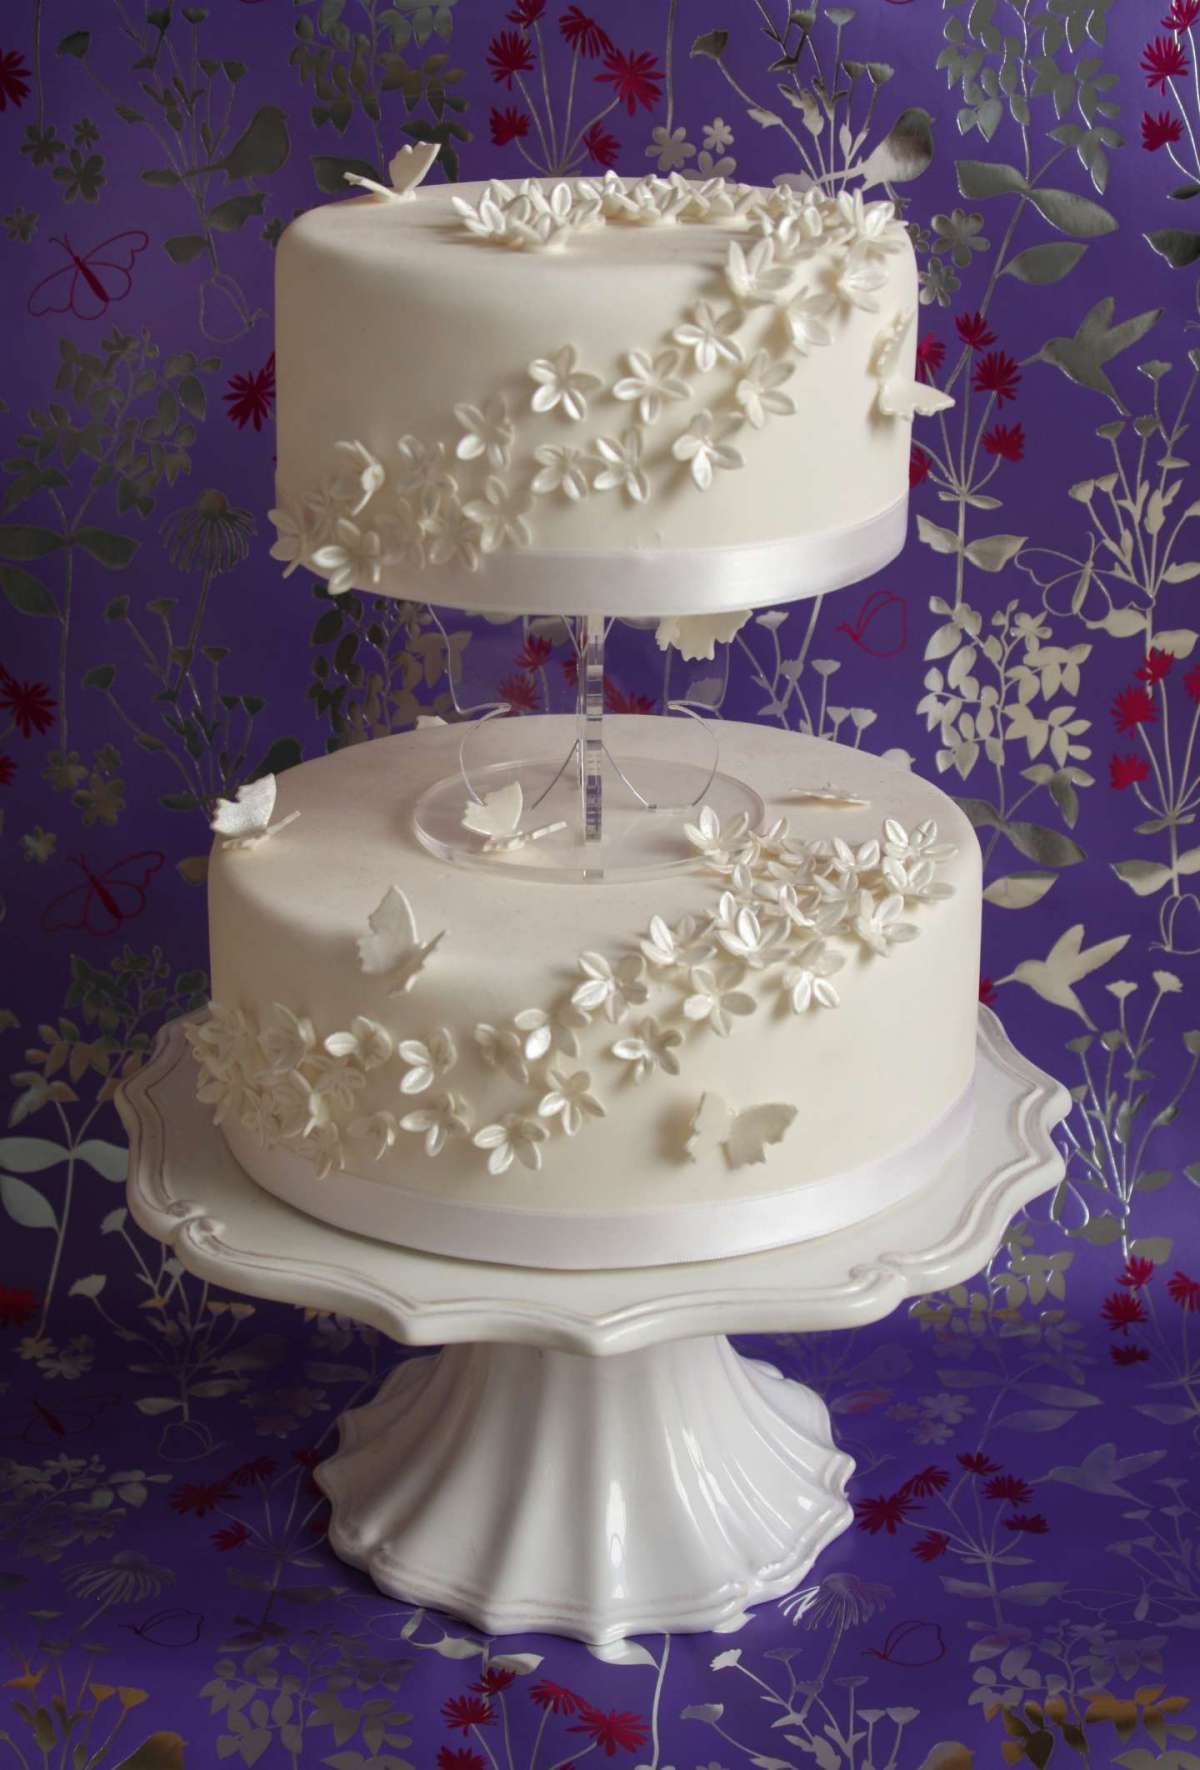 Wedding cake a piani separati